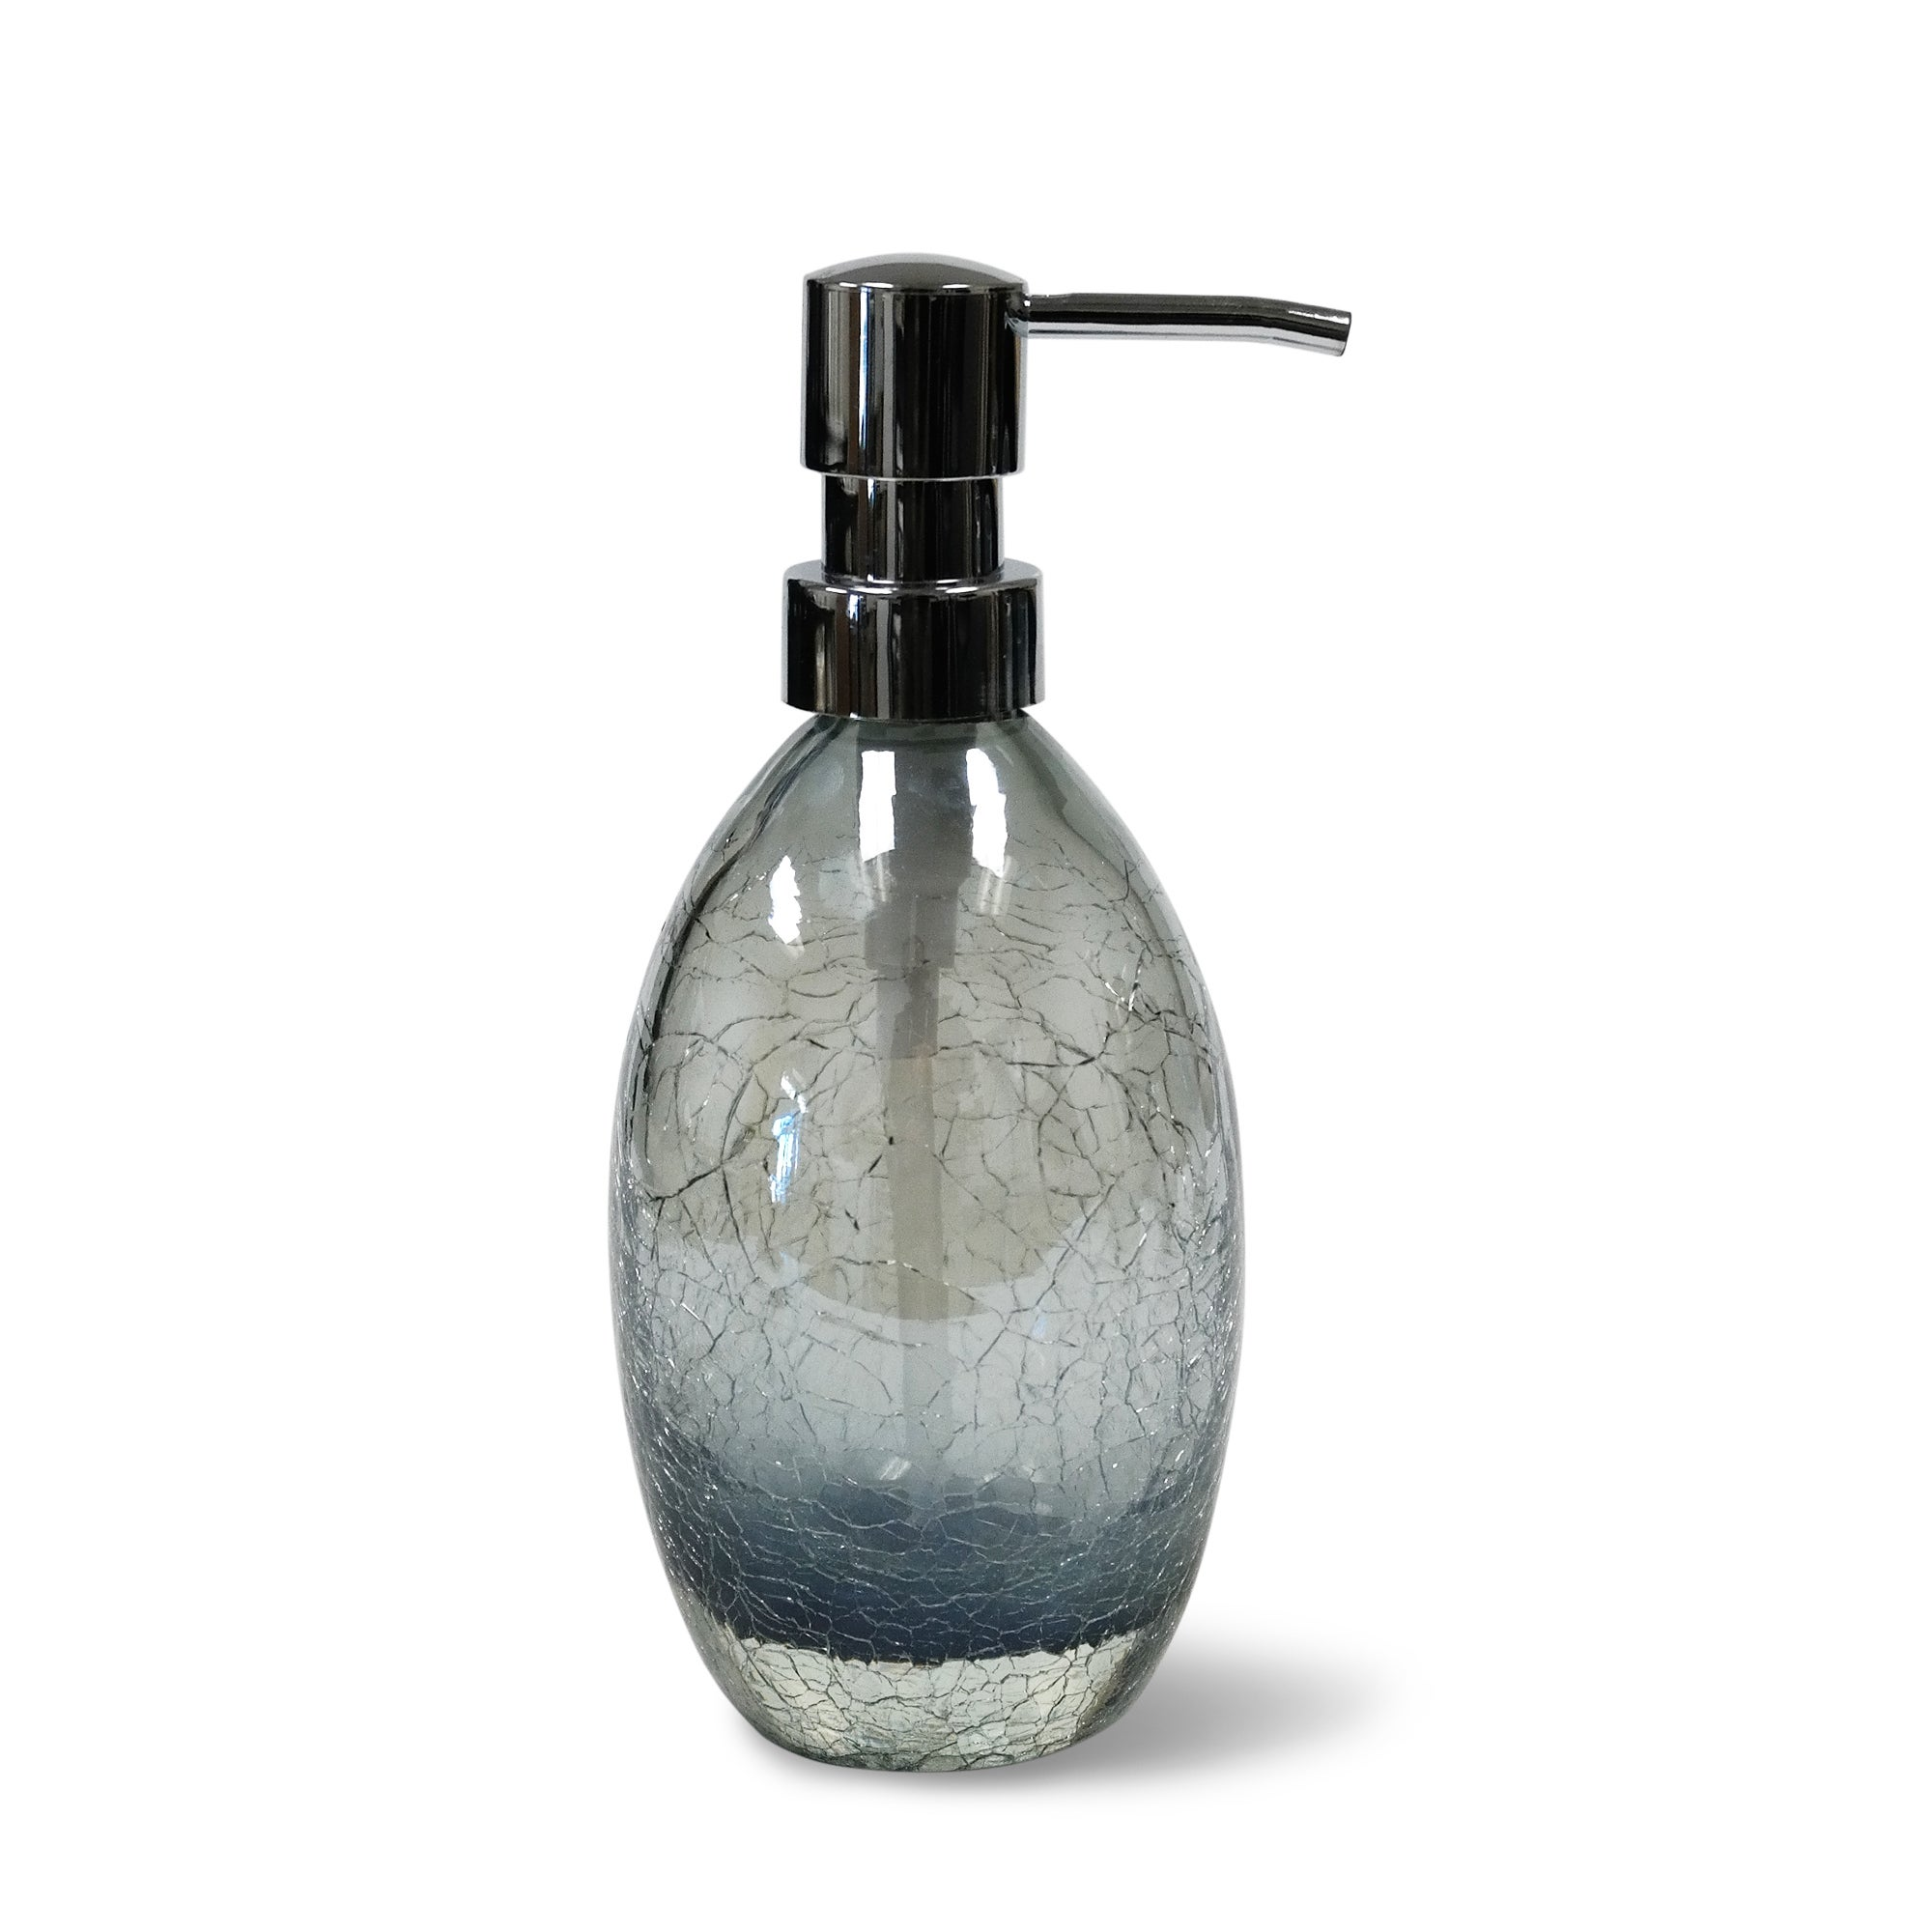 blue glass bathroom accessories. Veratex Cracked Blue Glass Bathroom Accessories Collection - Free Shipping On Orders Over $45 Overstock.com 20771854 R